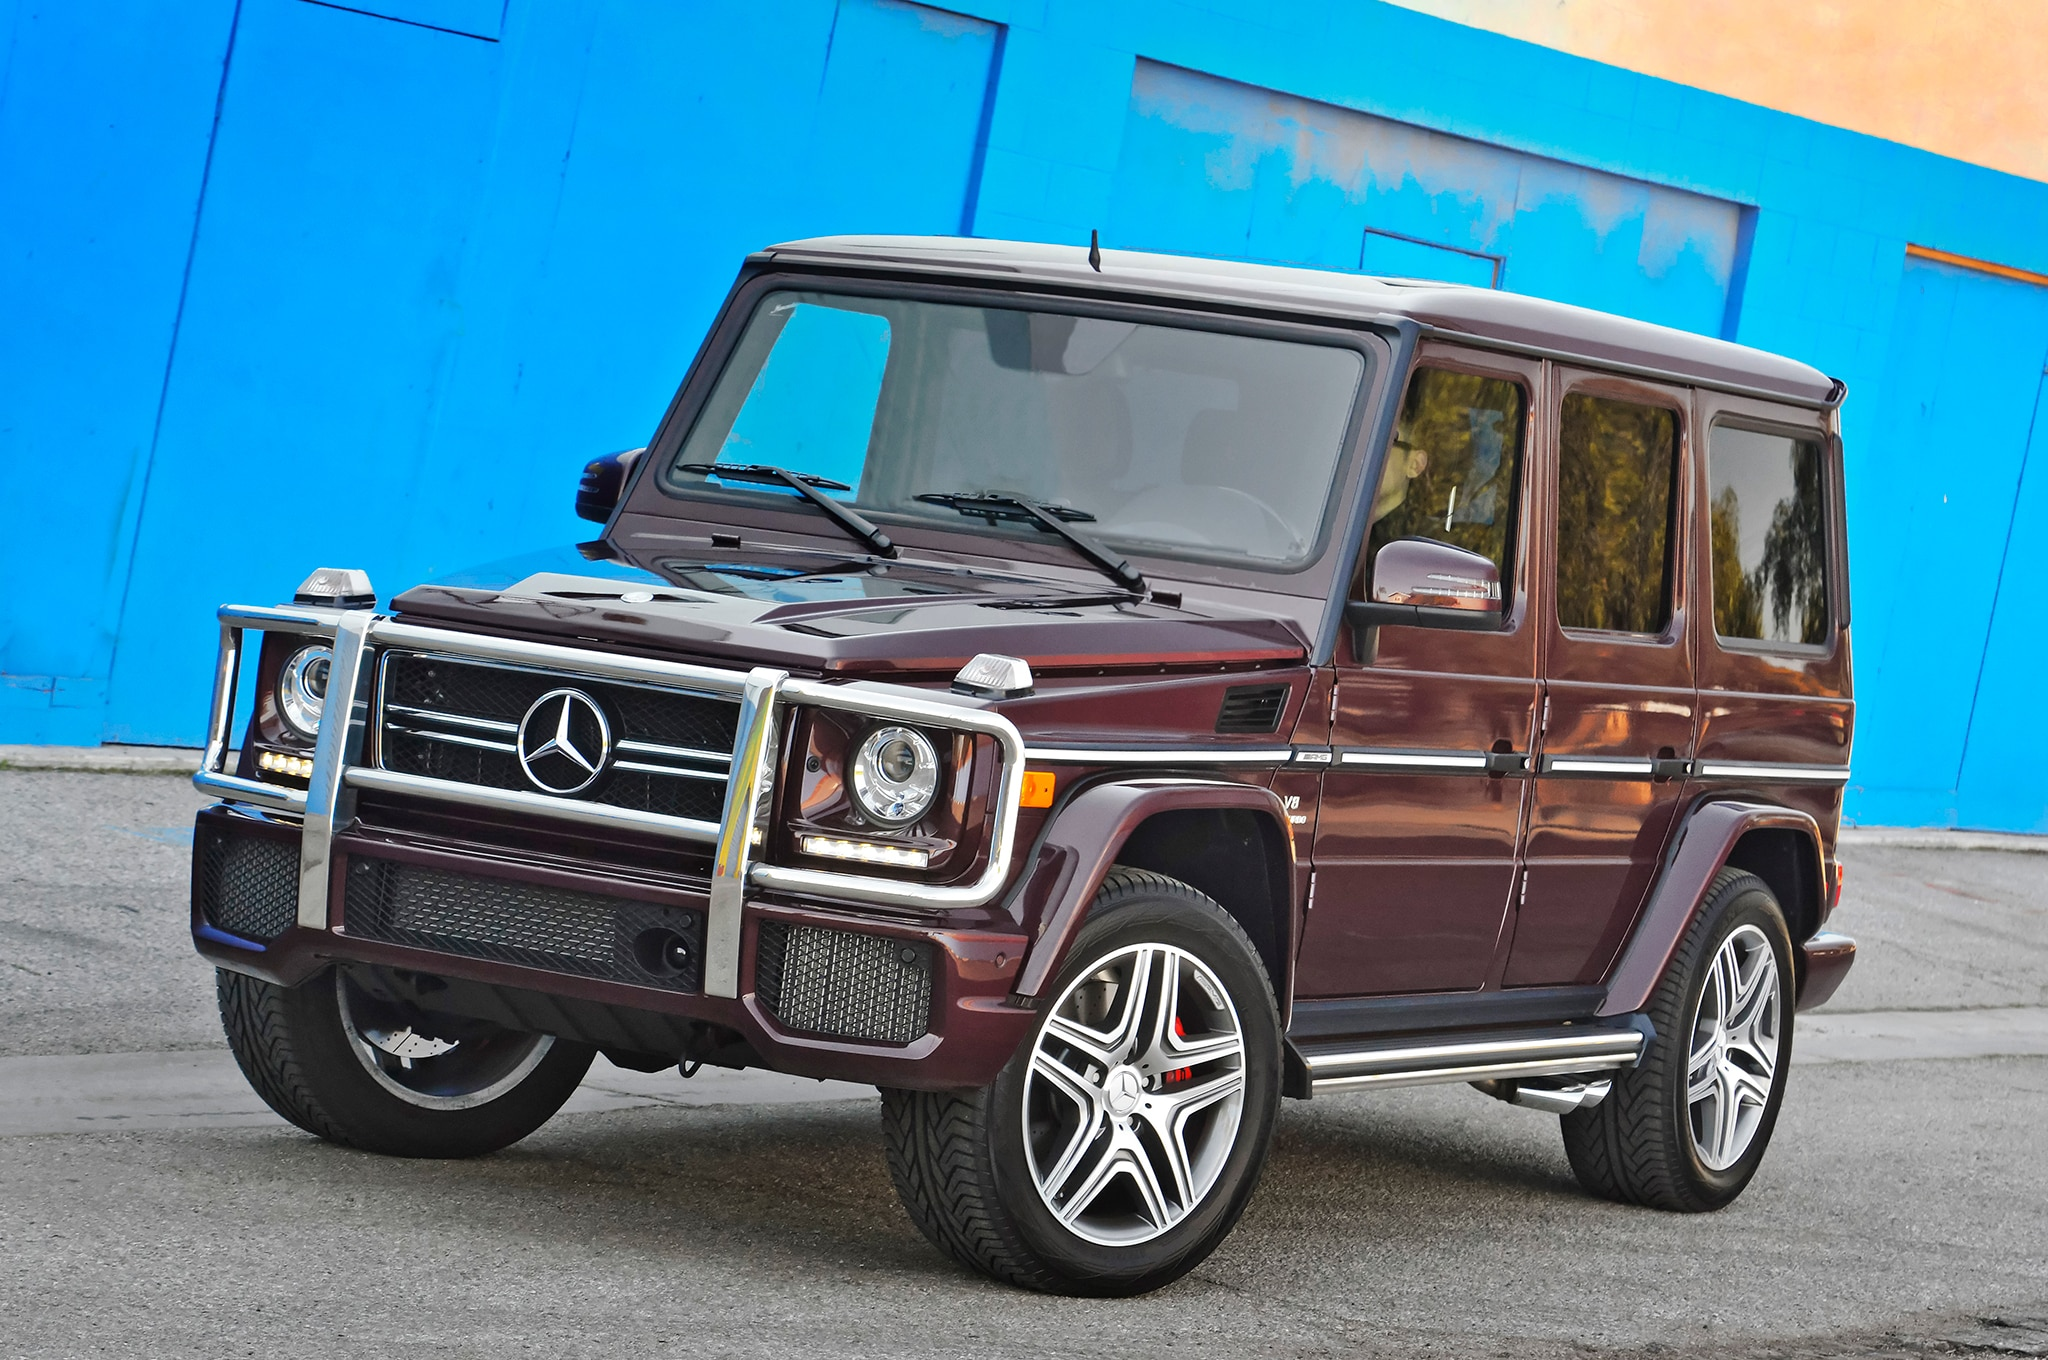 Brabus tunes mercedes benz g63 amg for dubai police for Mercedes benz g 63